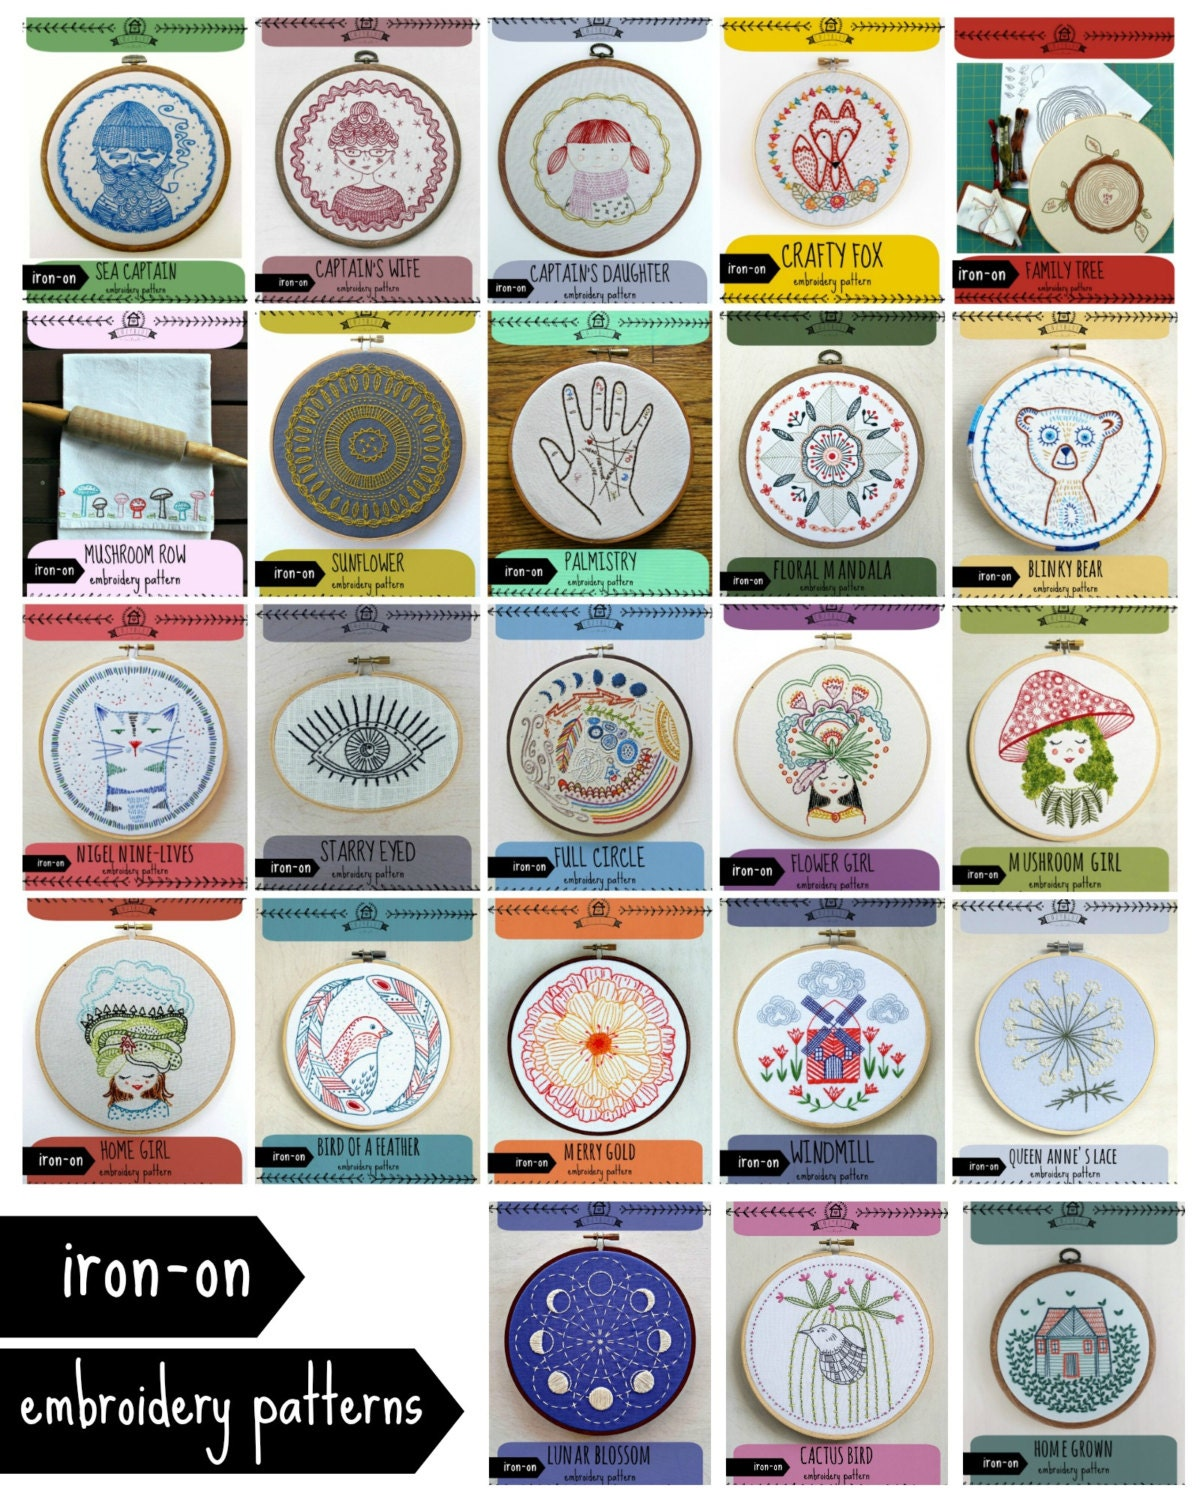 Iron on transfer embroidery patterns diy craft by